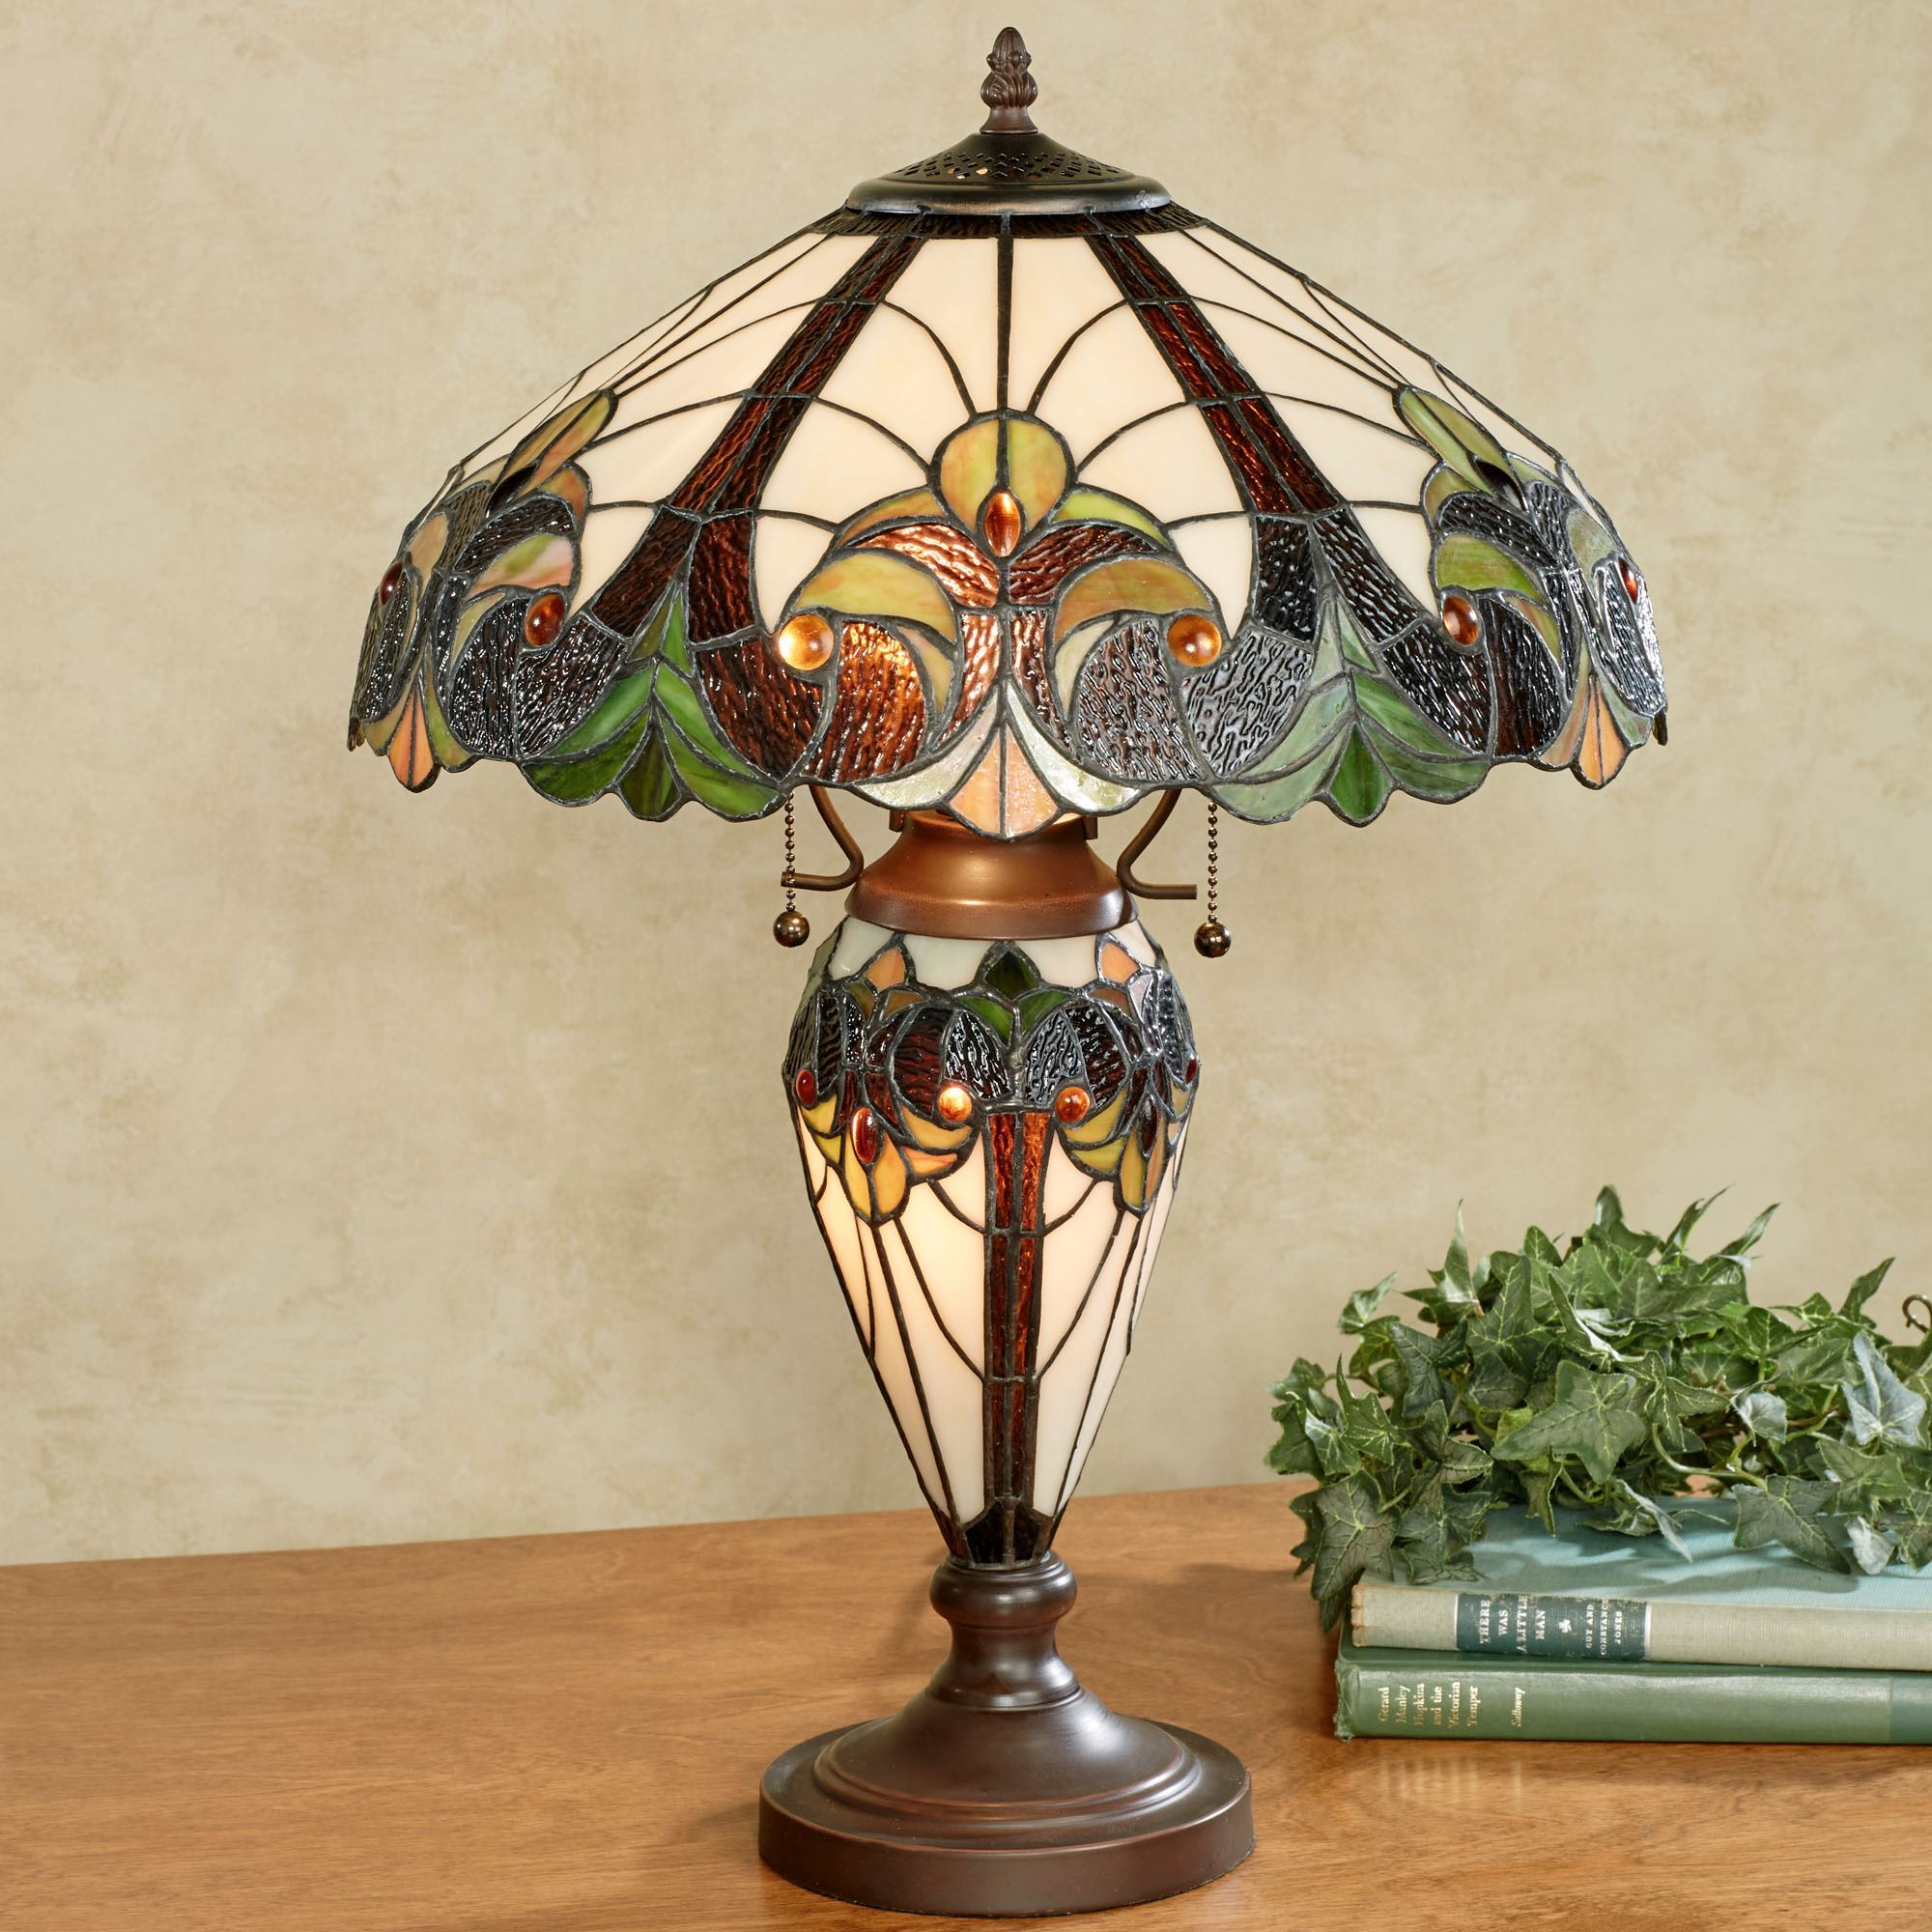 replacement lamp style of meyda shade parts plastic vintage tulip dale clearance full lamps stained glass tiffany shades size table floor